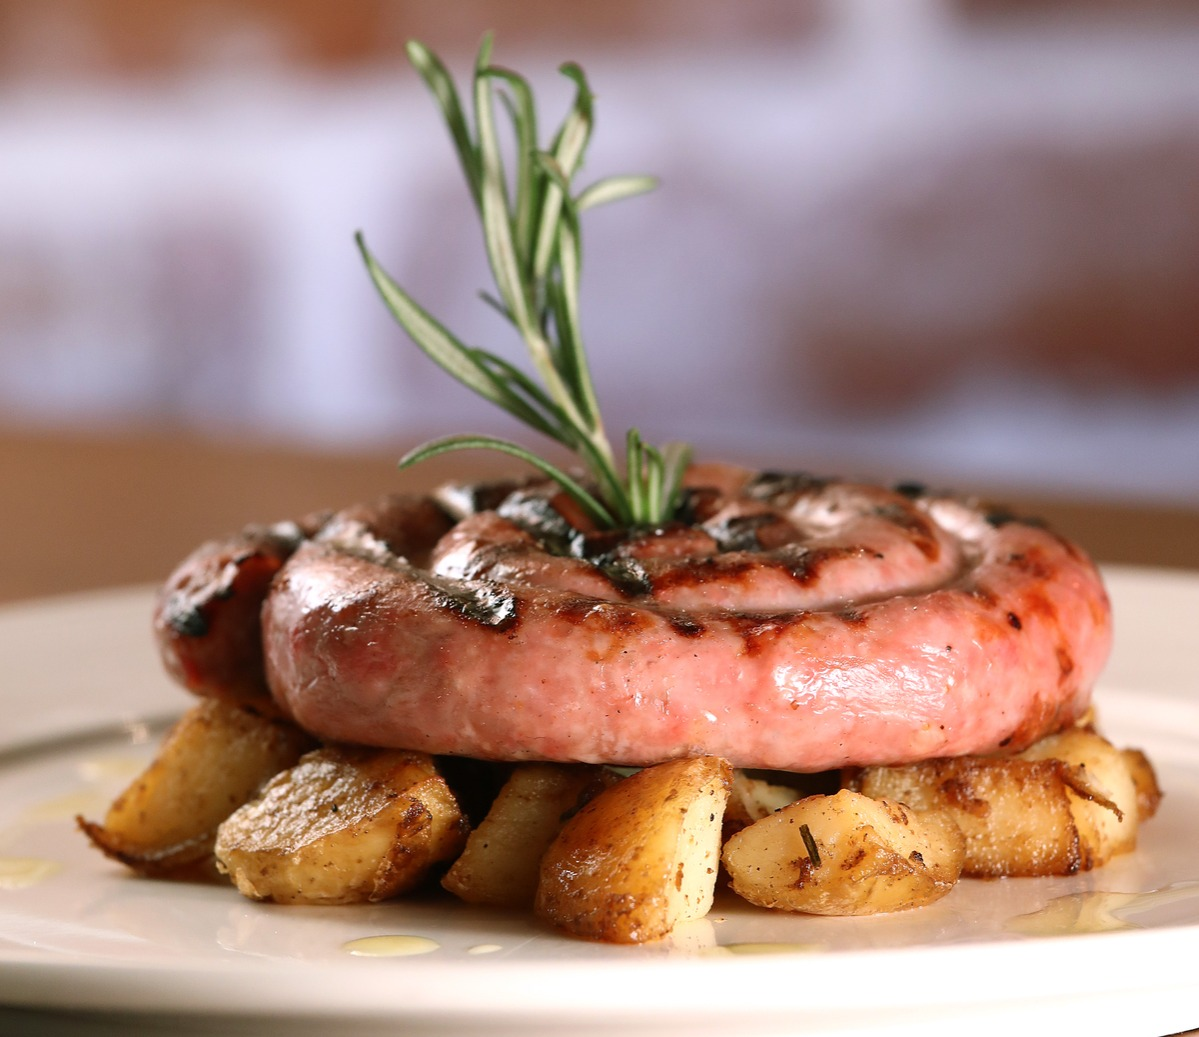 Italian sausage and potatoes dish with a rosemary garnish.